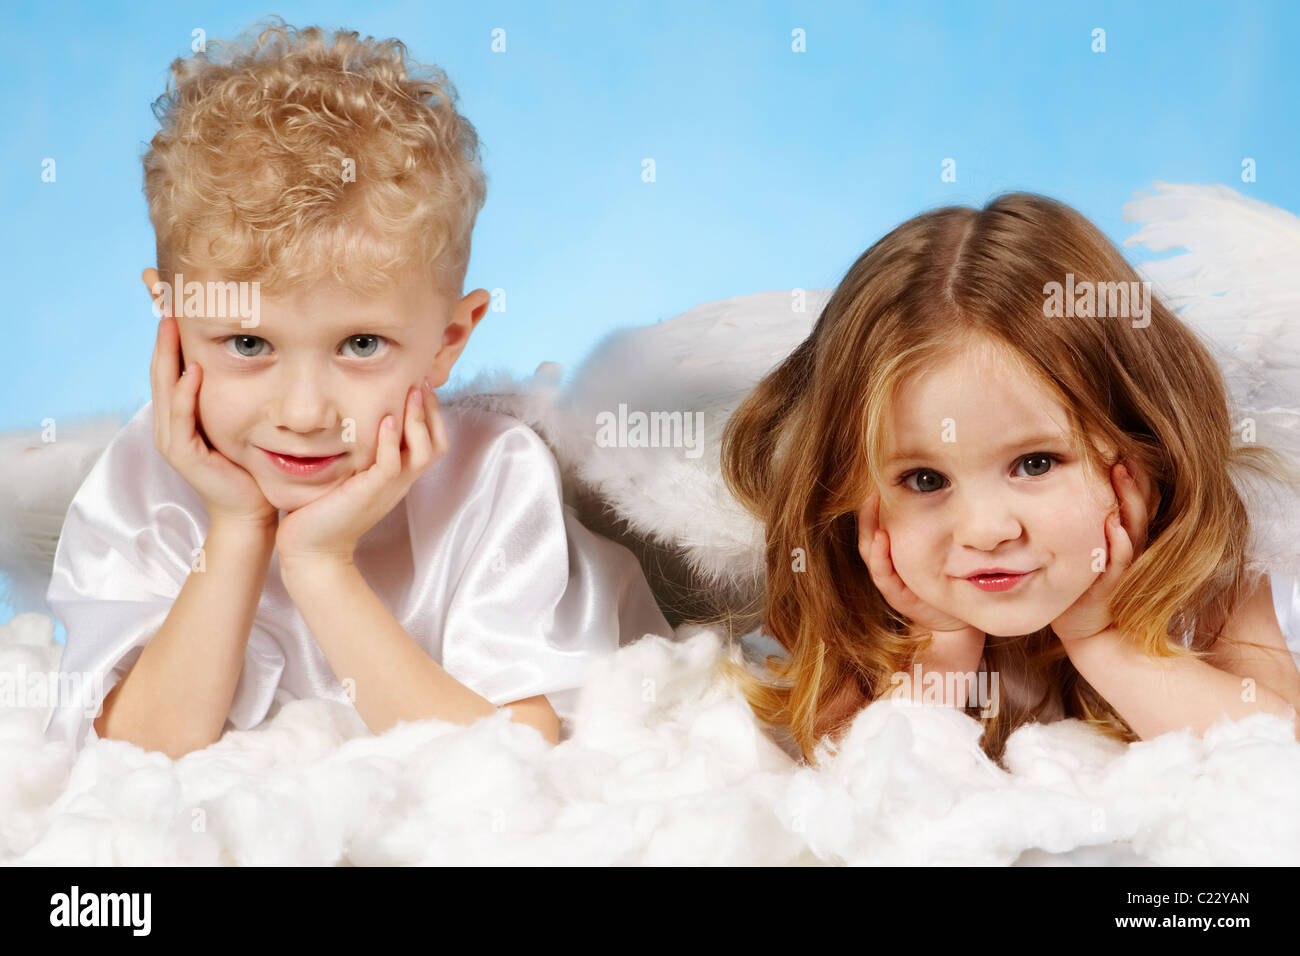 Small boy and girl in angelic costume lying on white cloud - Stock Image